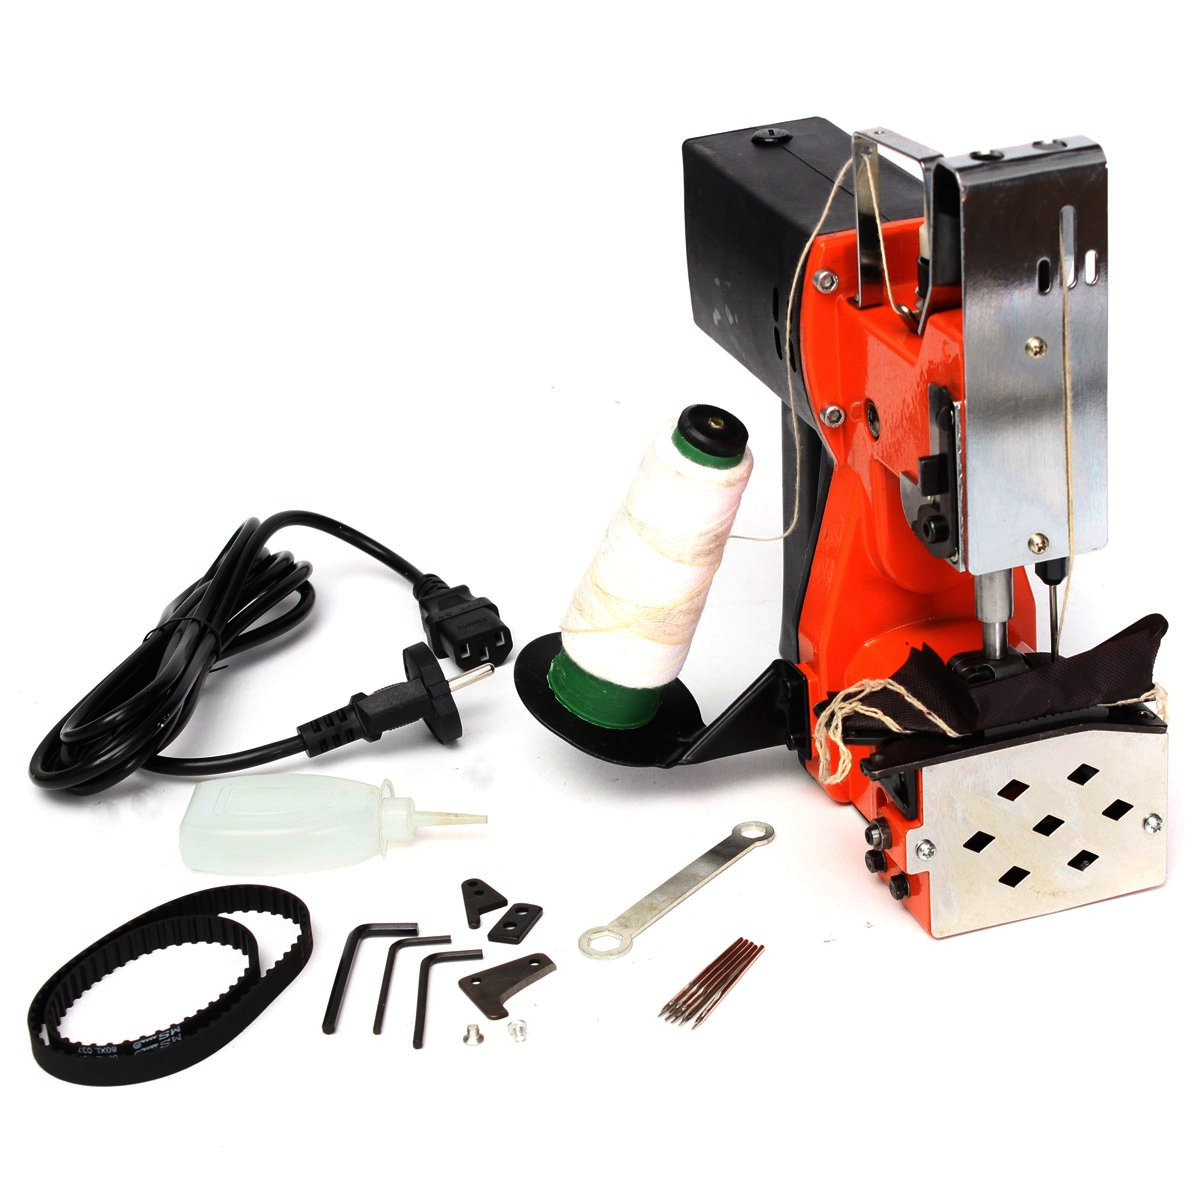 220v portable electric sewing machine sealing machines. Black Bedroom Furniture Sets. Home Design Ideas